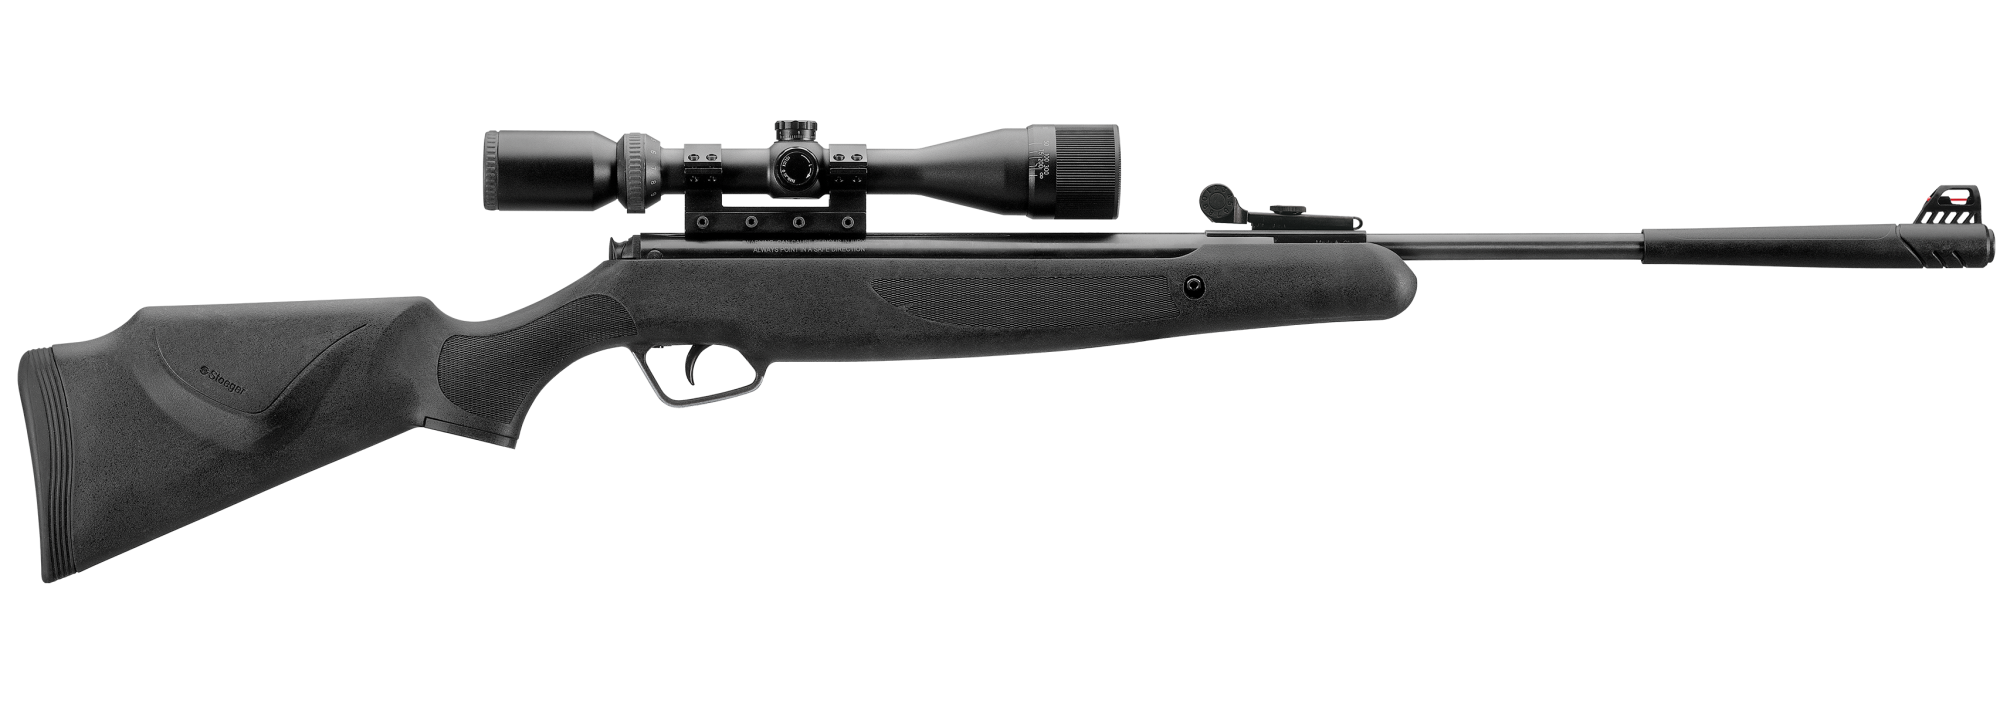 Gun clipart air rifle. X stoeger airguns firearm